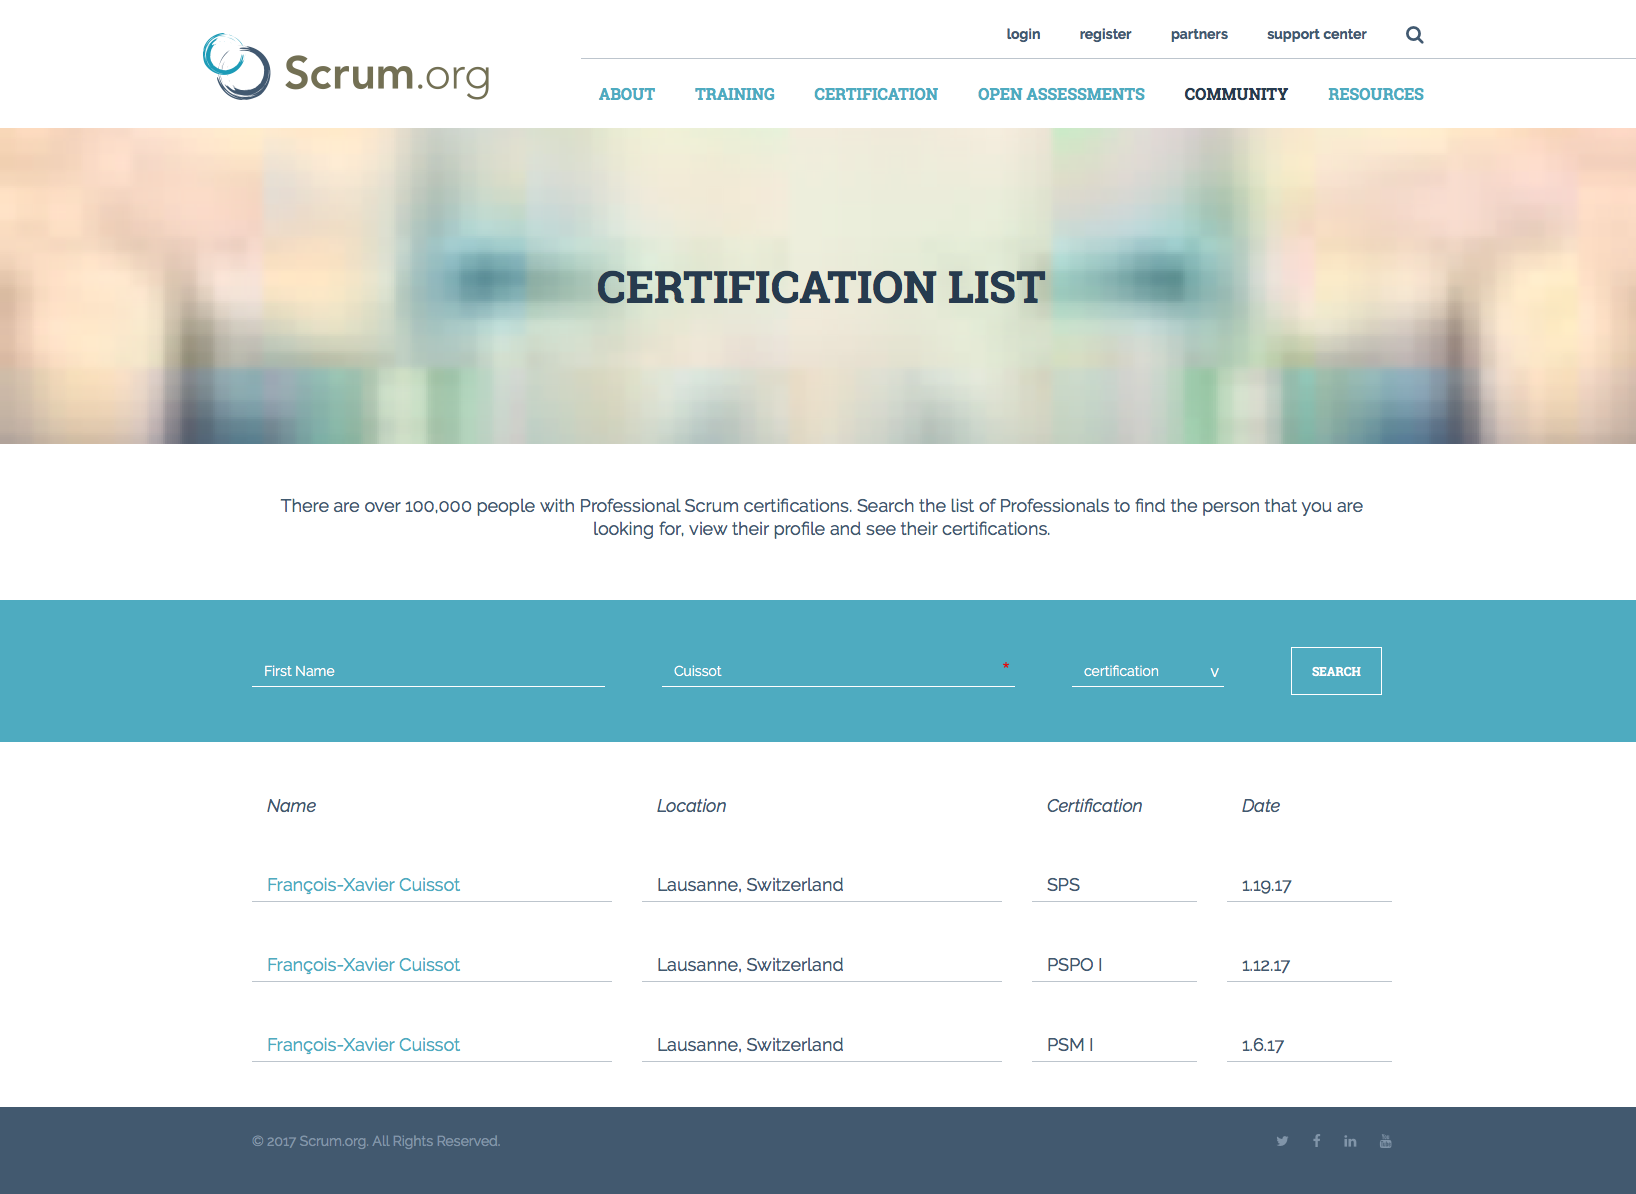 How to pass Scrum certifications PSM I, PSPO I and SPS in one Sprint